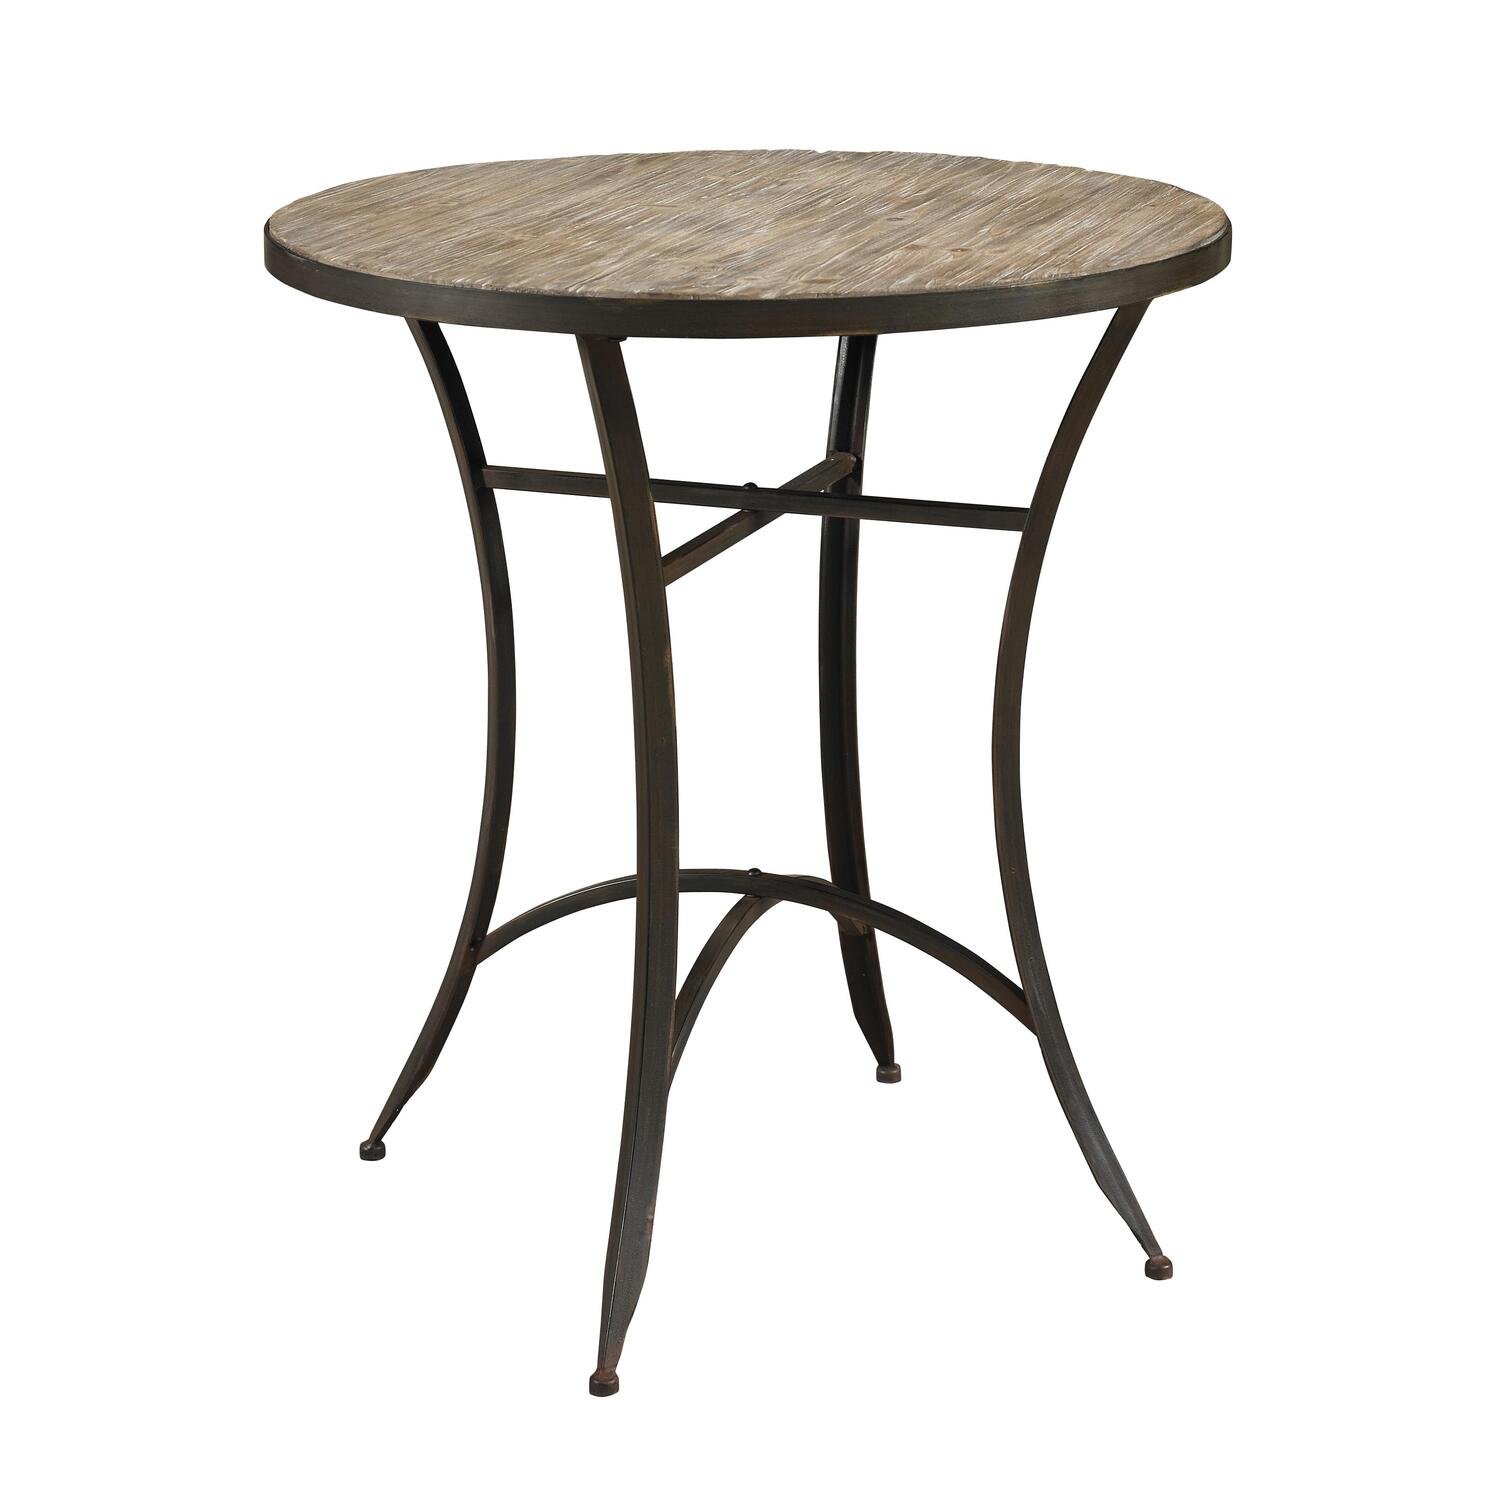 Driftwood Chair Driftwood Round Table And Side Chairs 379 00 Ojcommerce